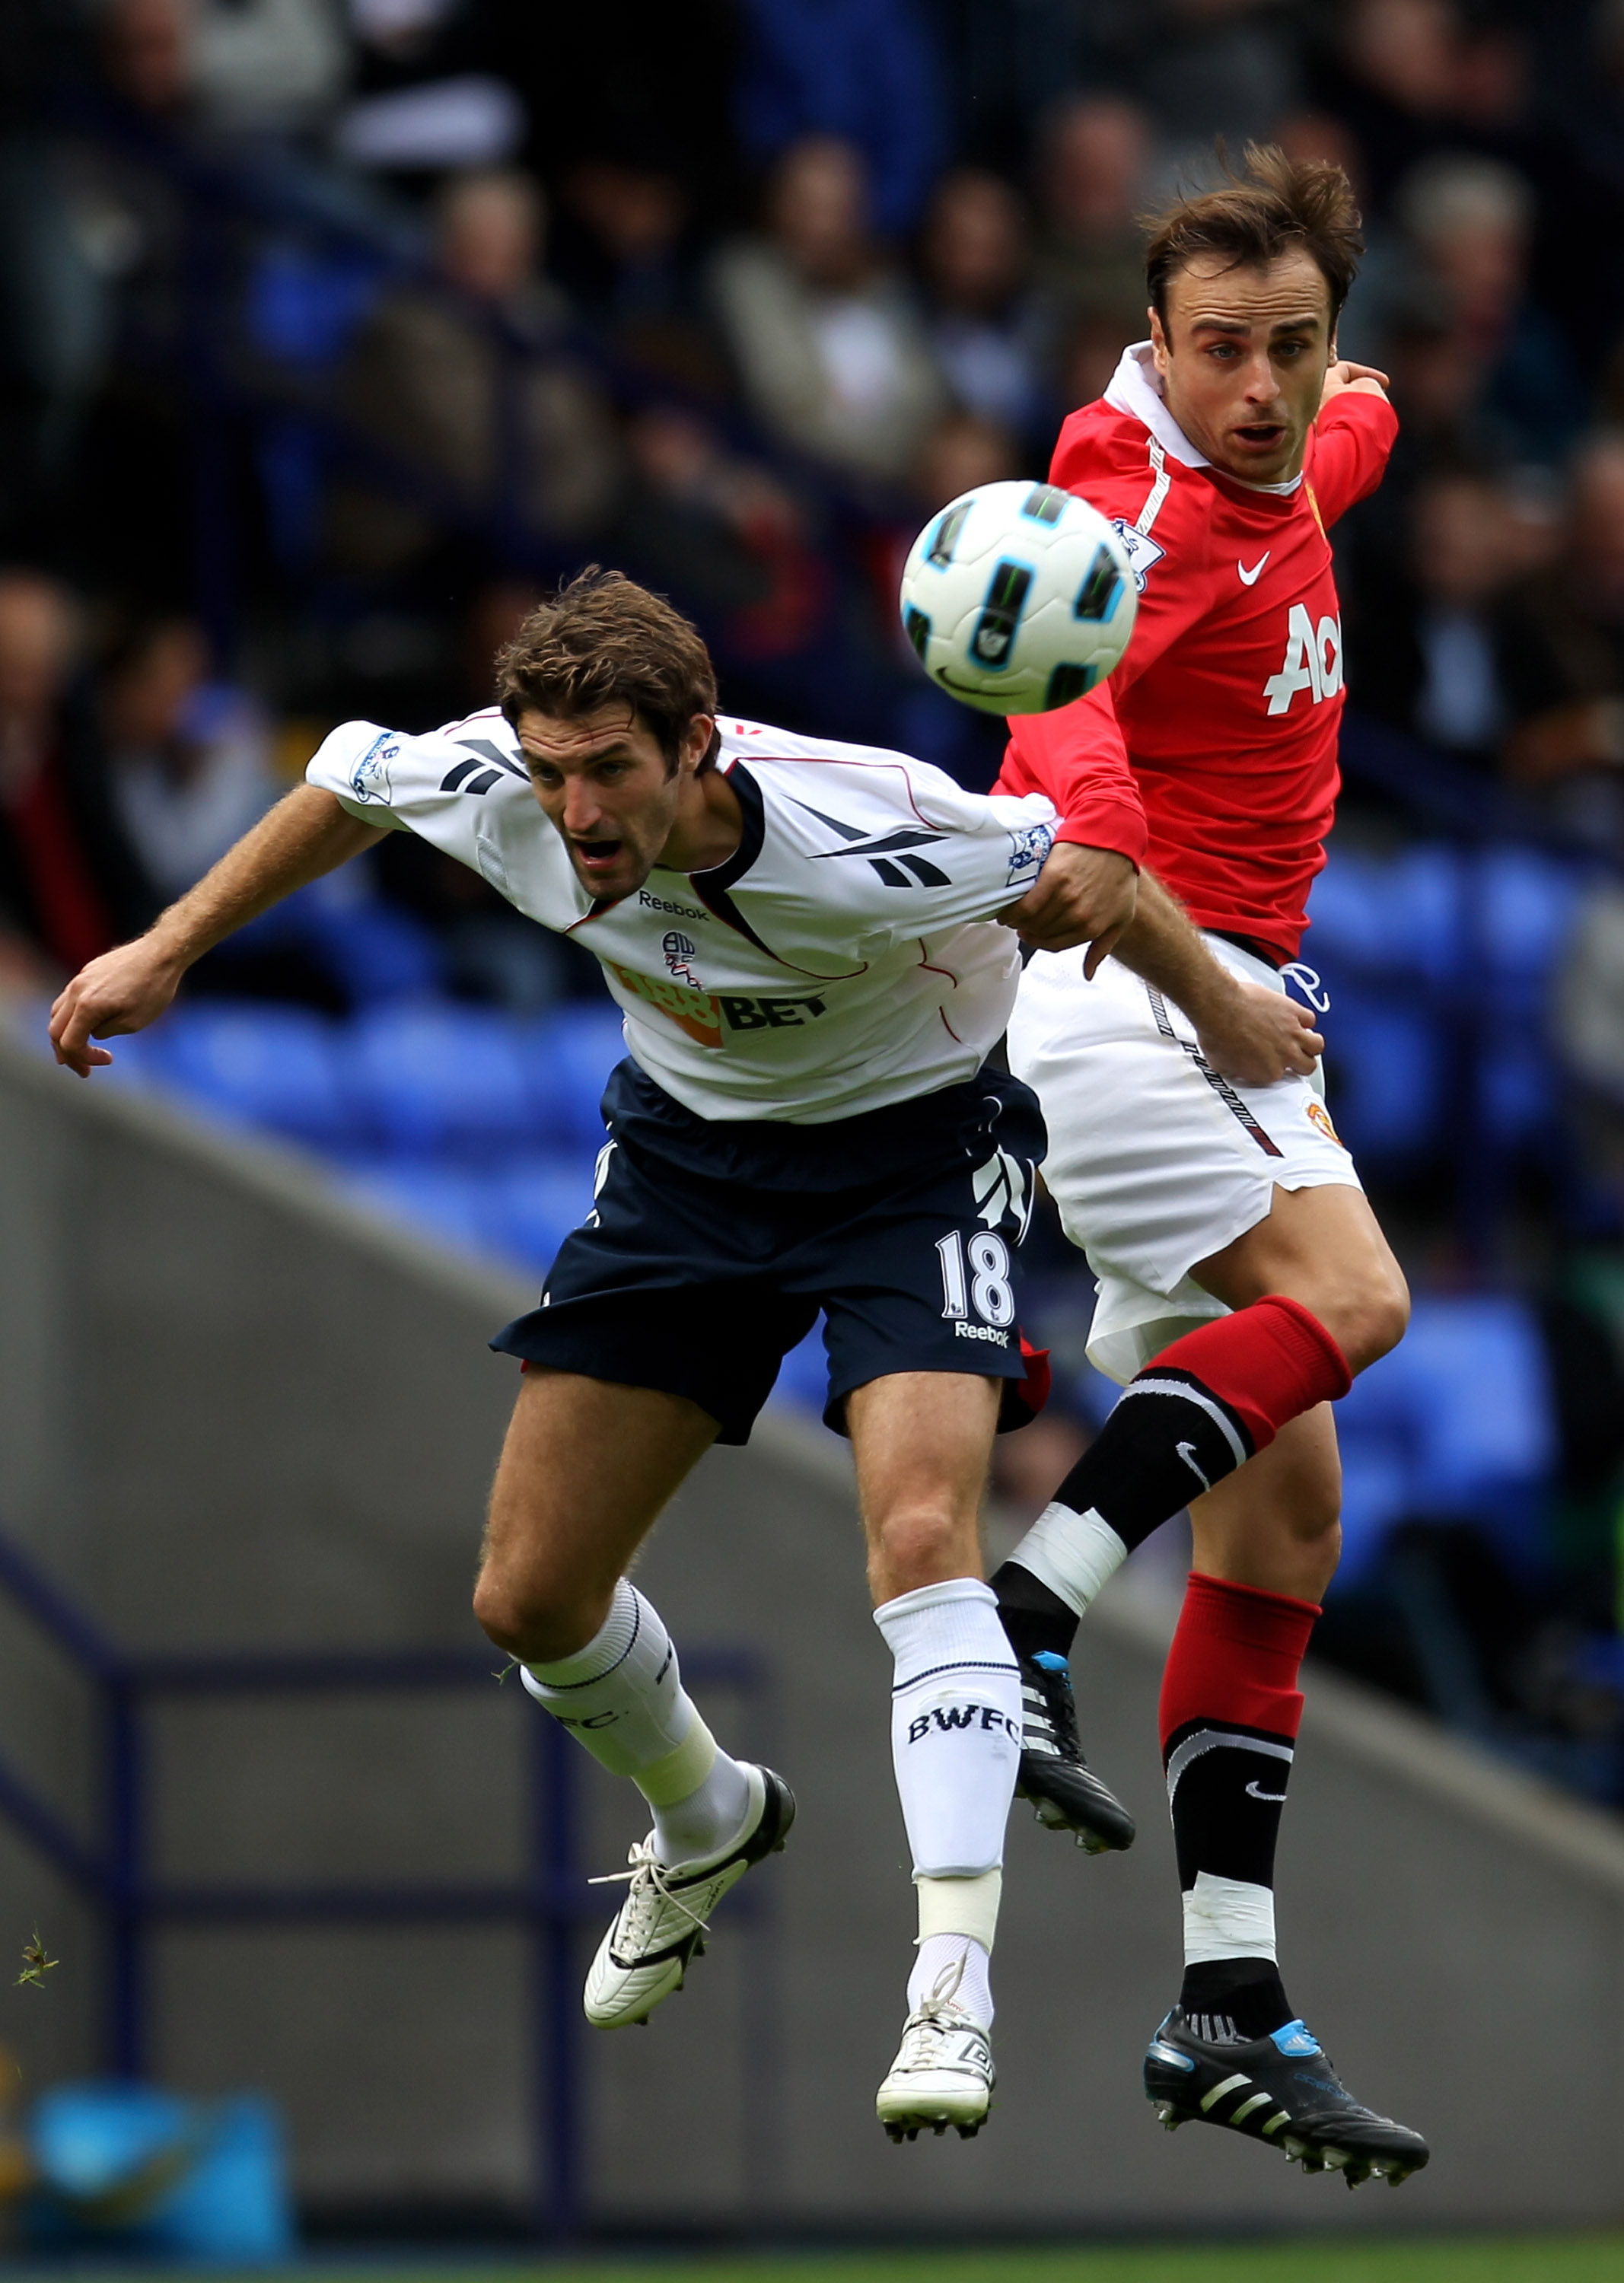 BOLTON, ENGLAND - SEPTEMBER 26:  Sam Ricketts of Bolton Wanderers competes with Dimitar Berbatov of Manchester United during the Barclays Premier League match between Bolton Wanderers and Manchester United at the Reebok Stadium on September 26, 2010 in Bo